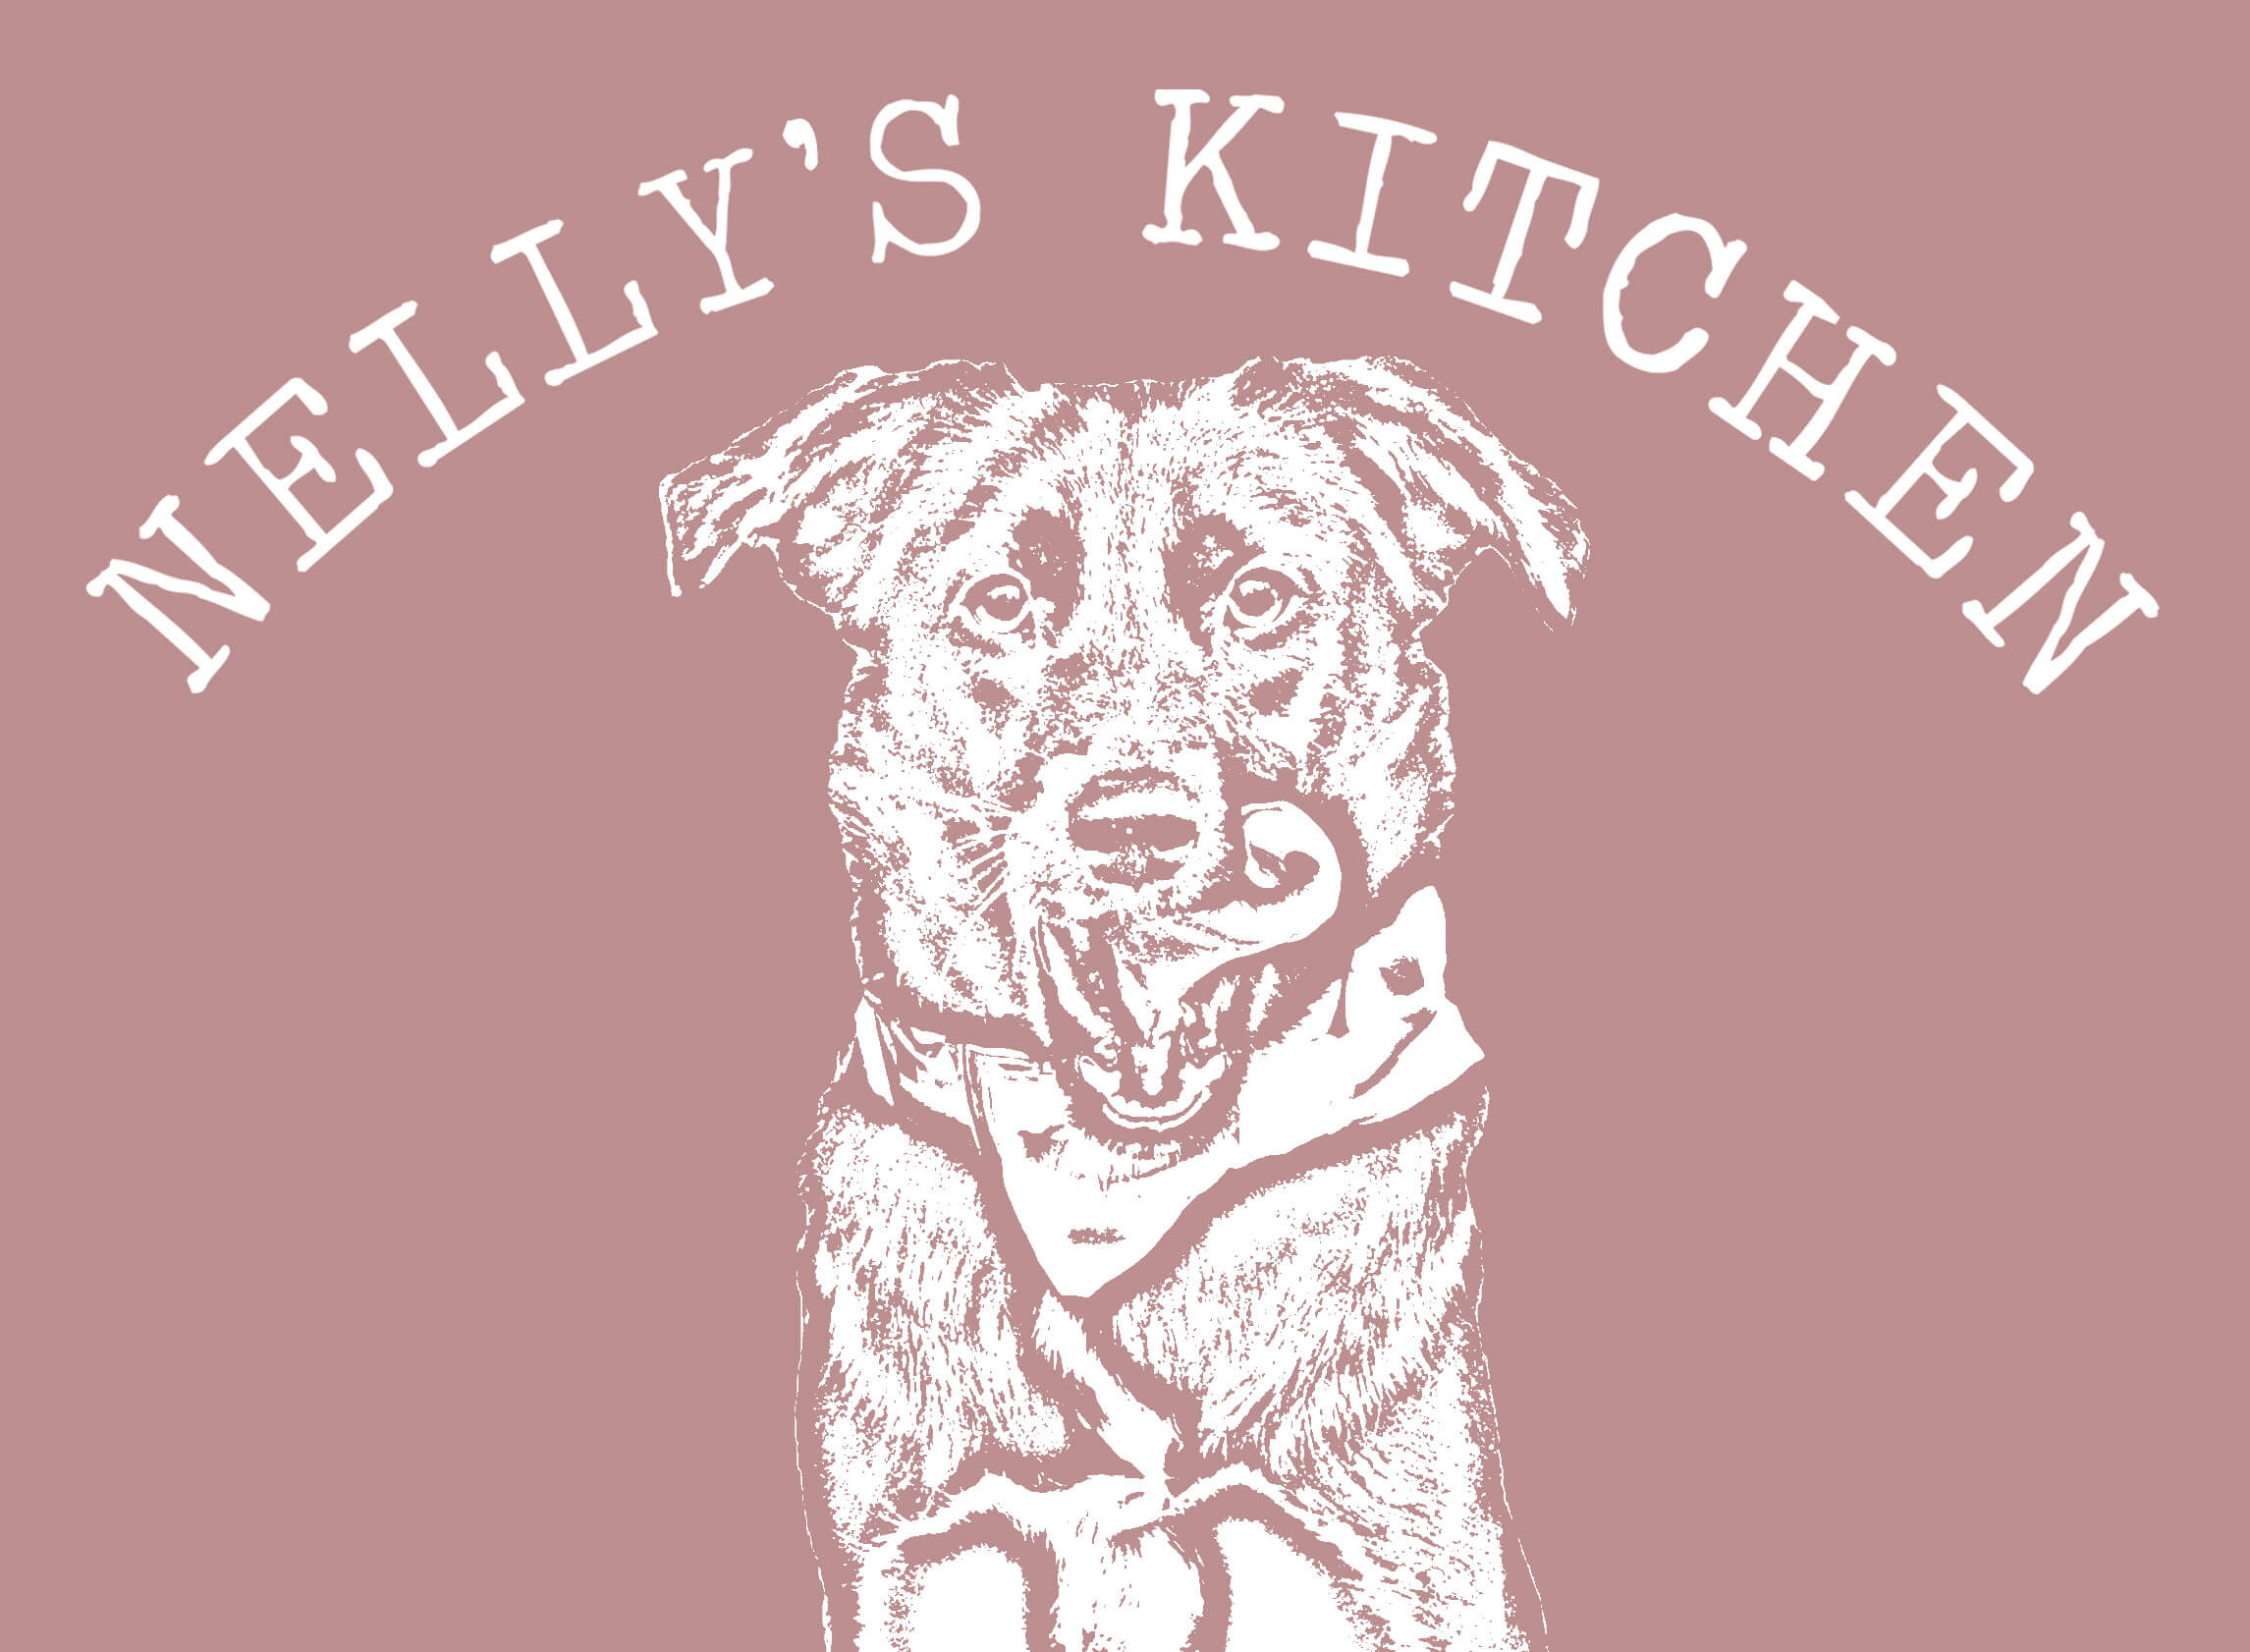 Nelly's Kitchen